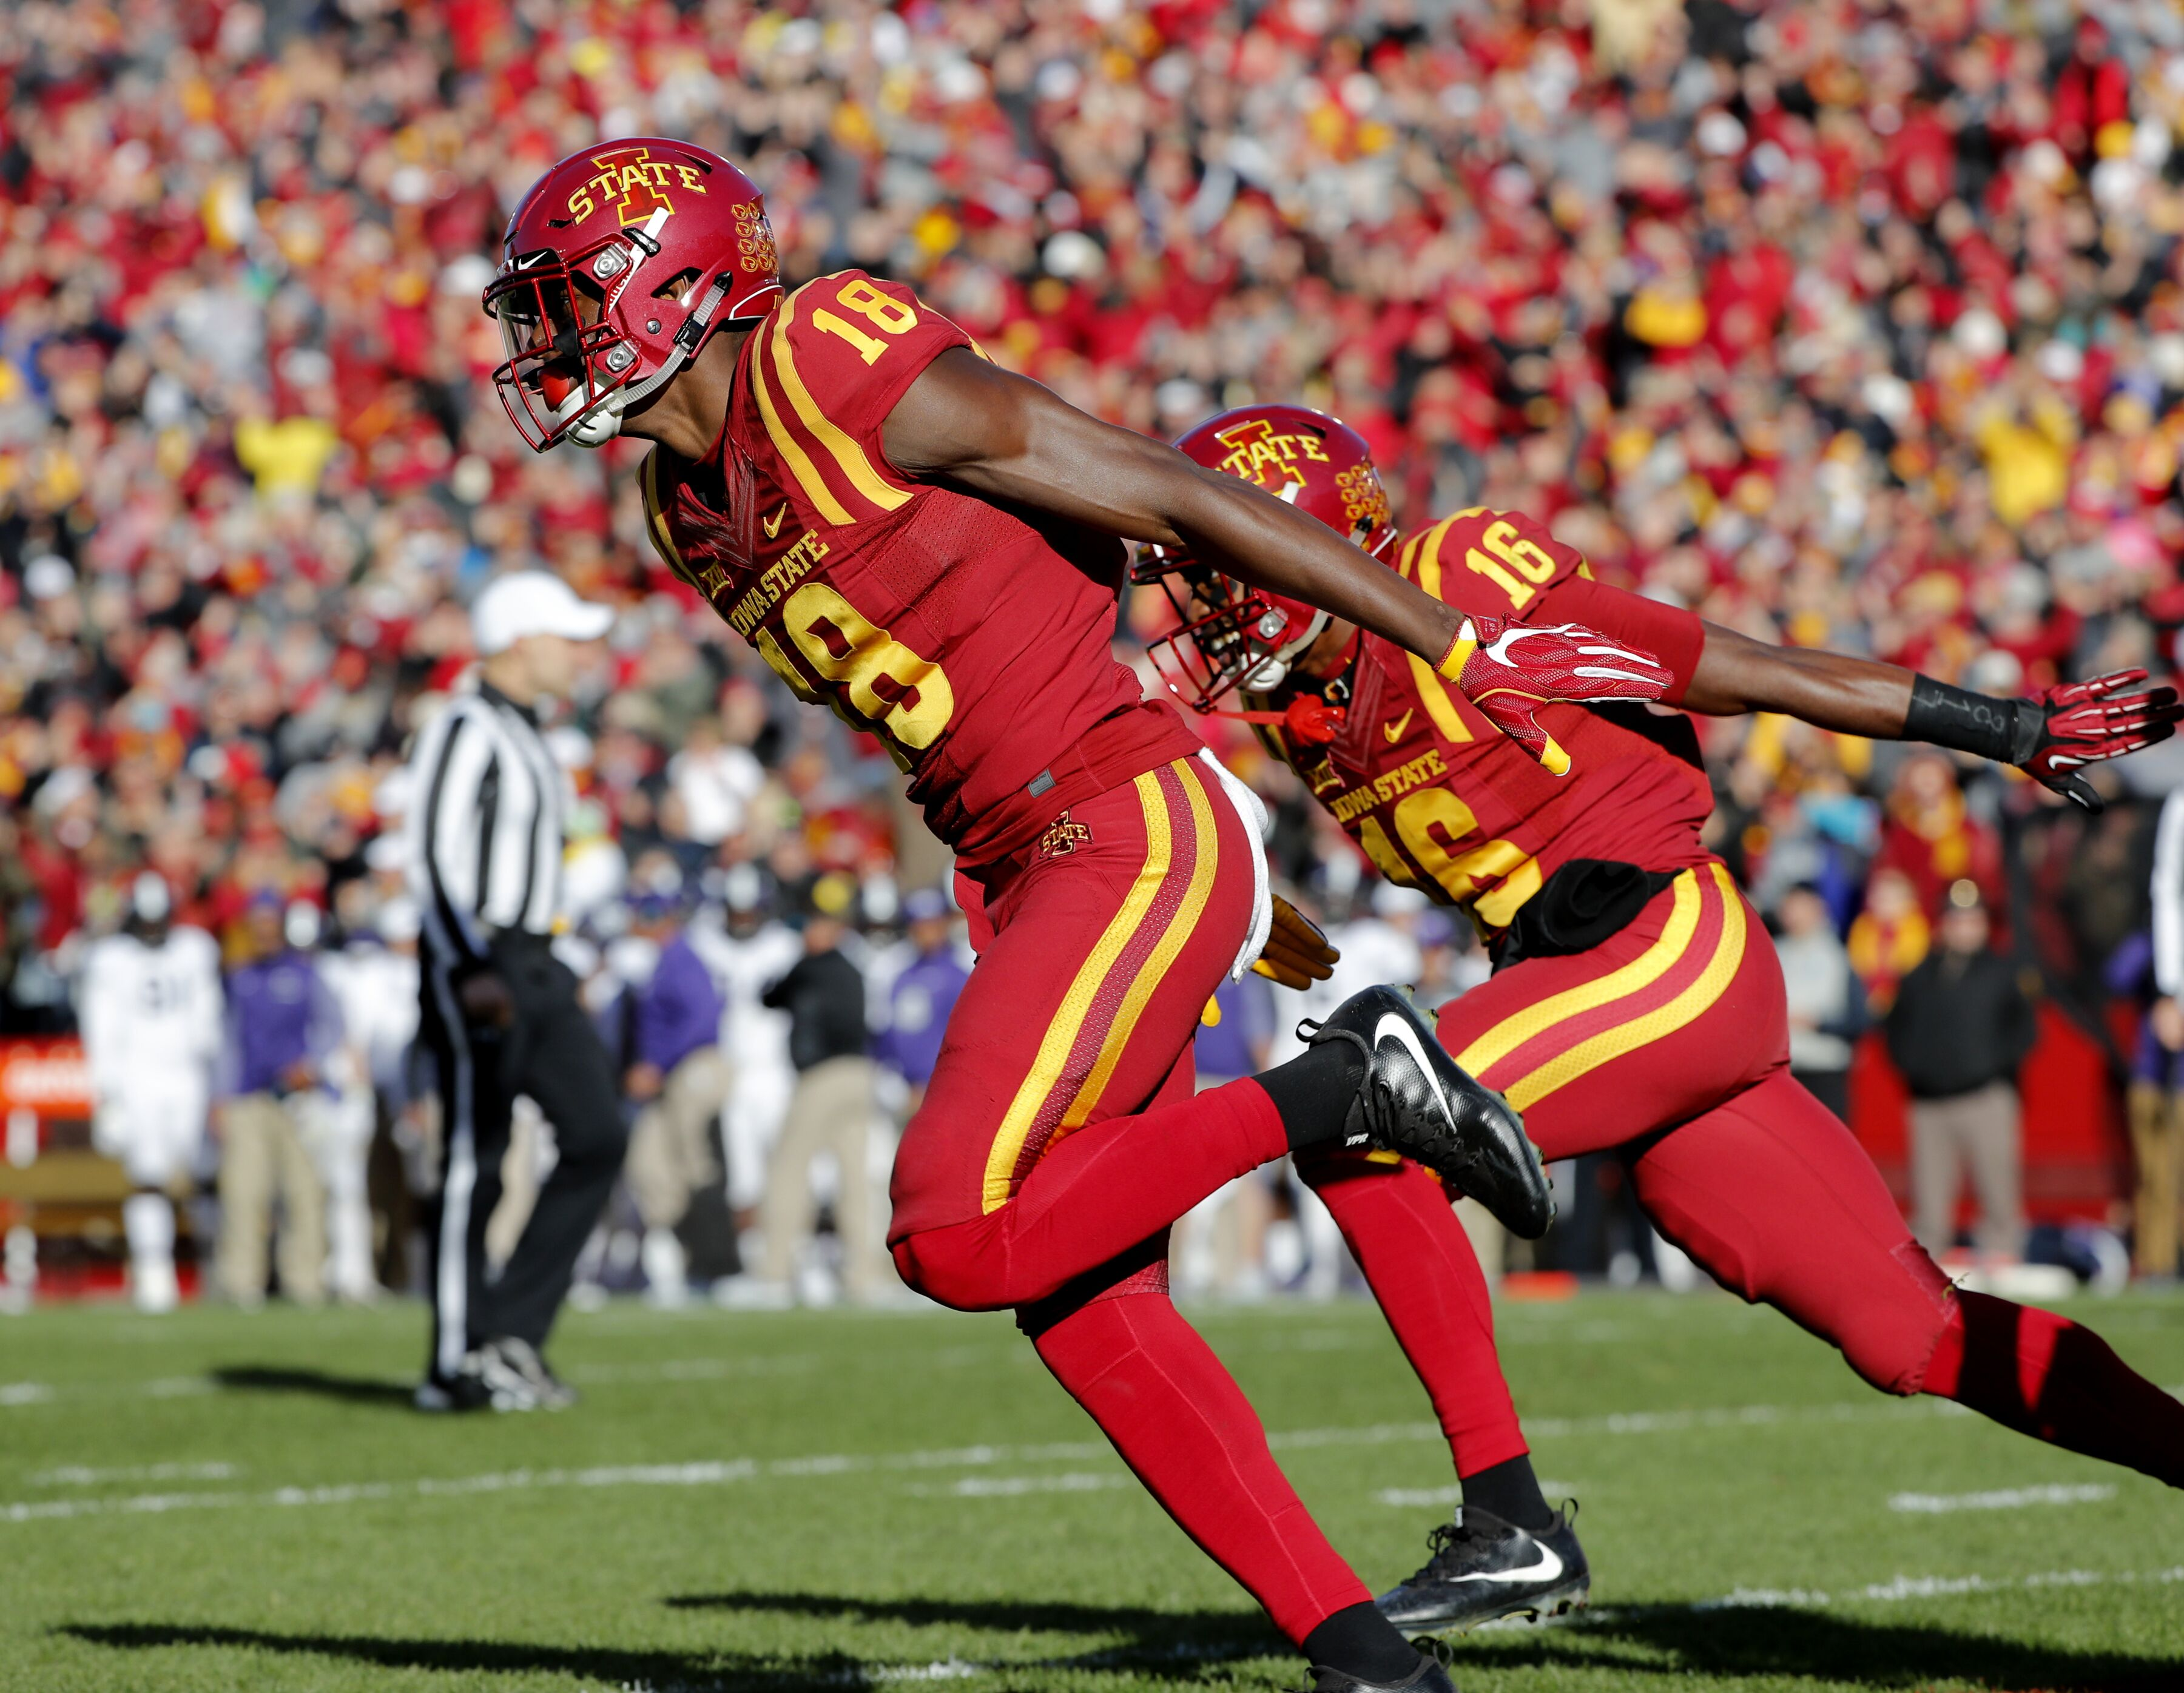 Need Iowa State Cyclones Football Tickets TicketCity offers 100 moneyback guarantee uptodate prices amp event information Over 1 million customers served since 1990!